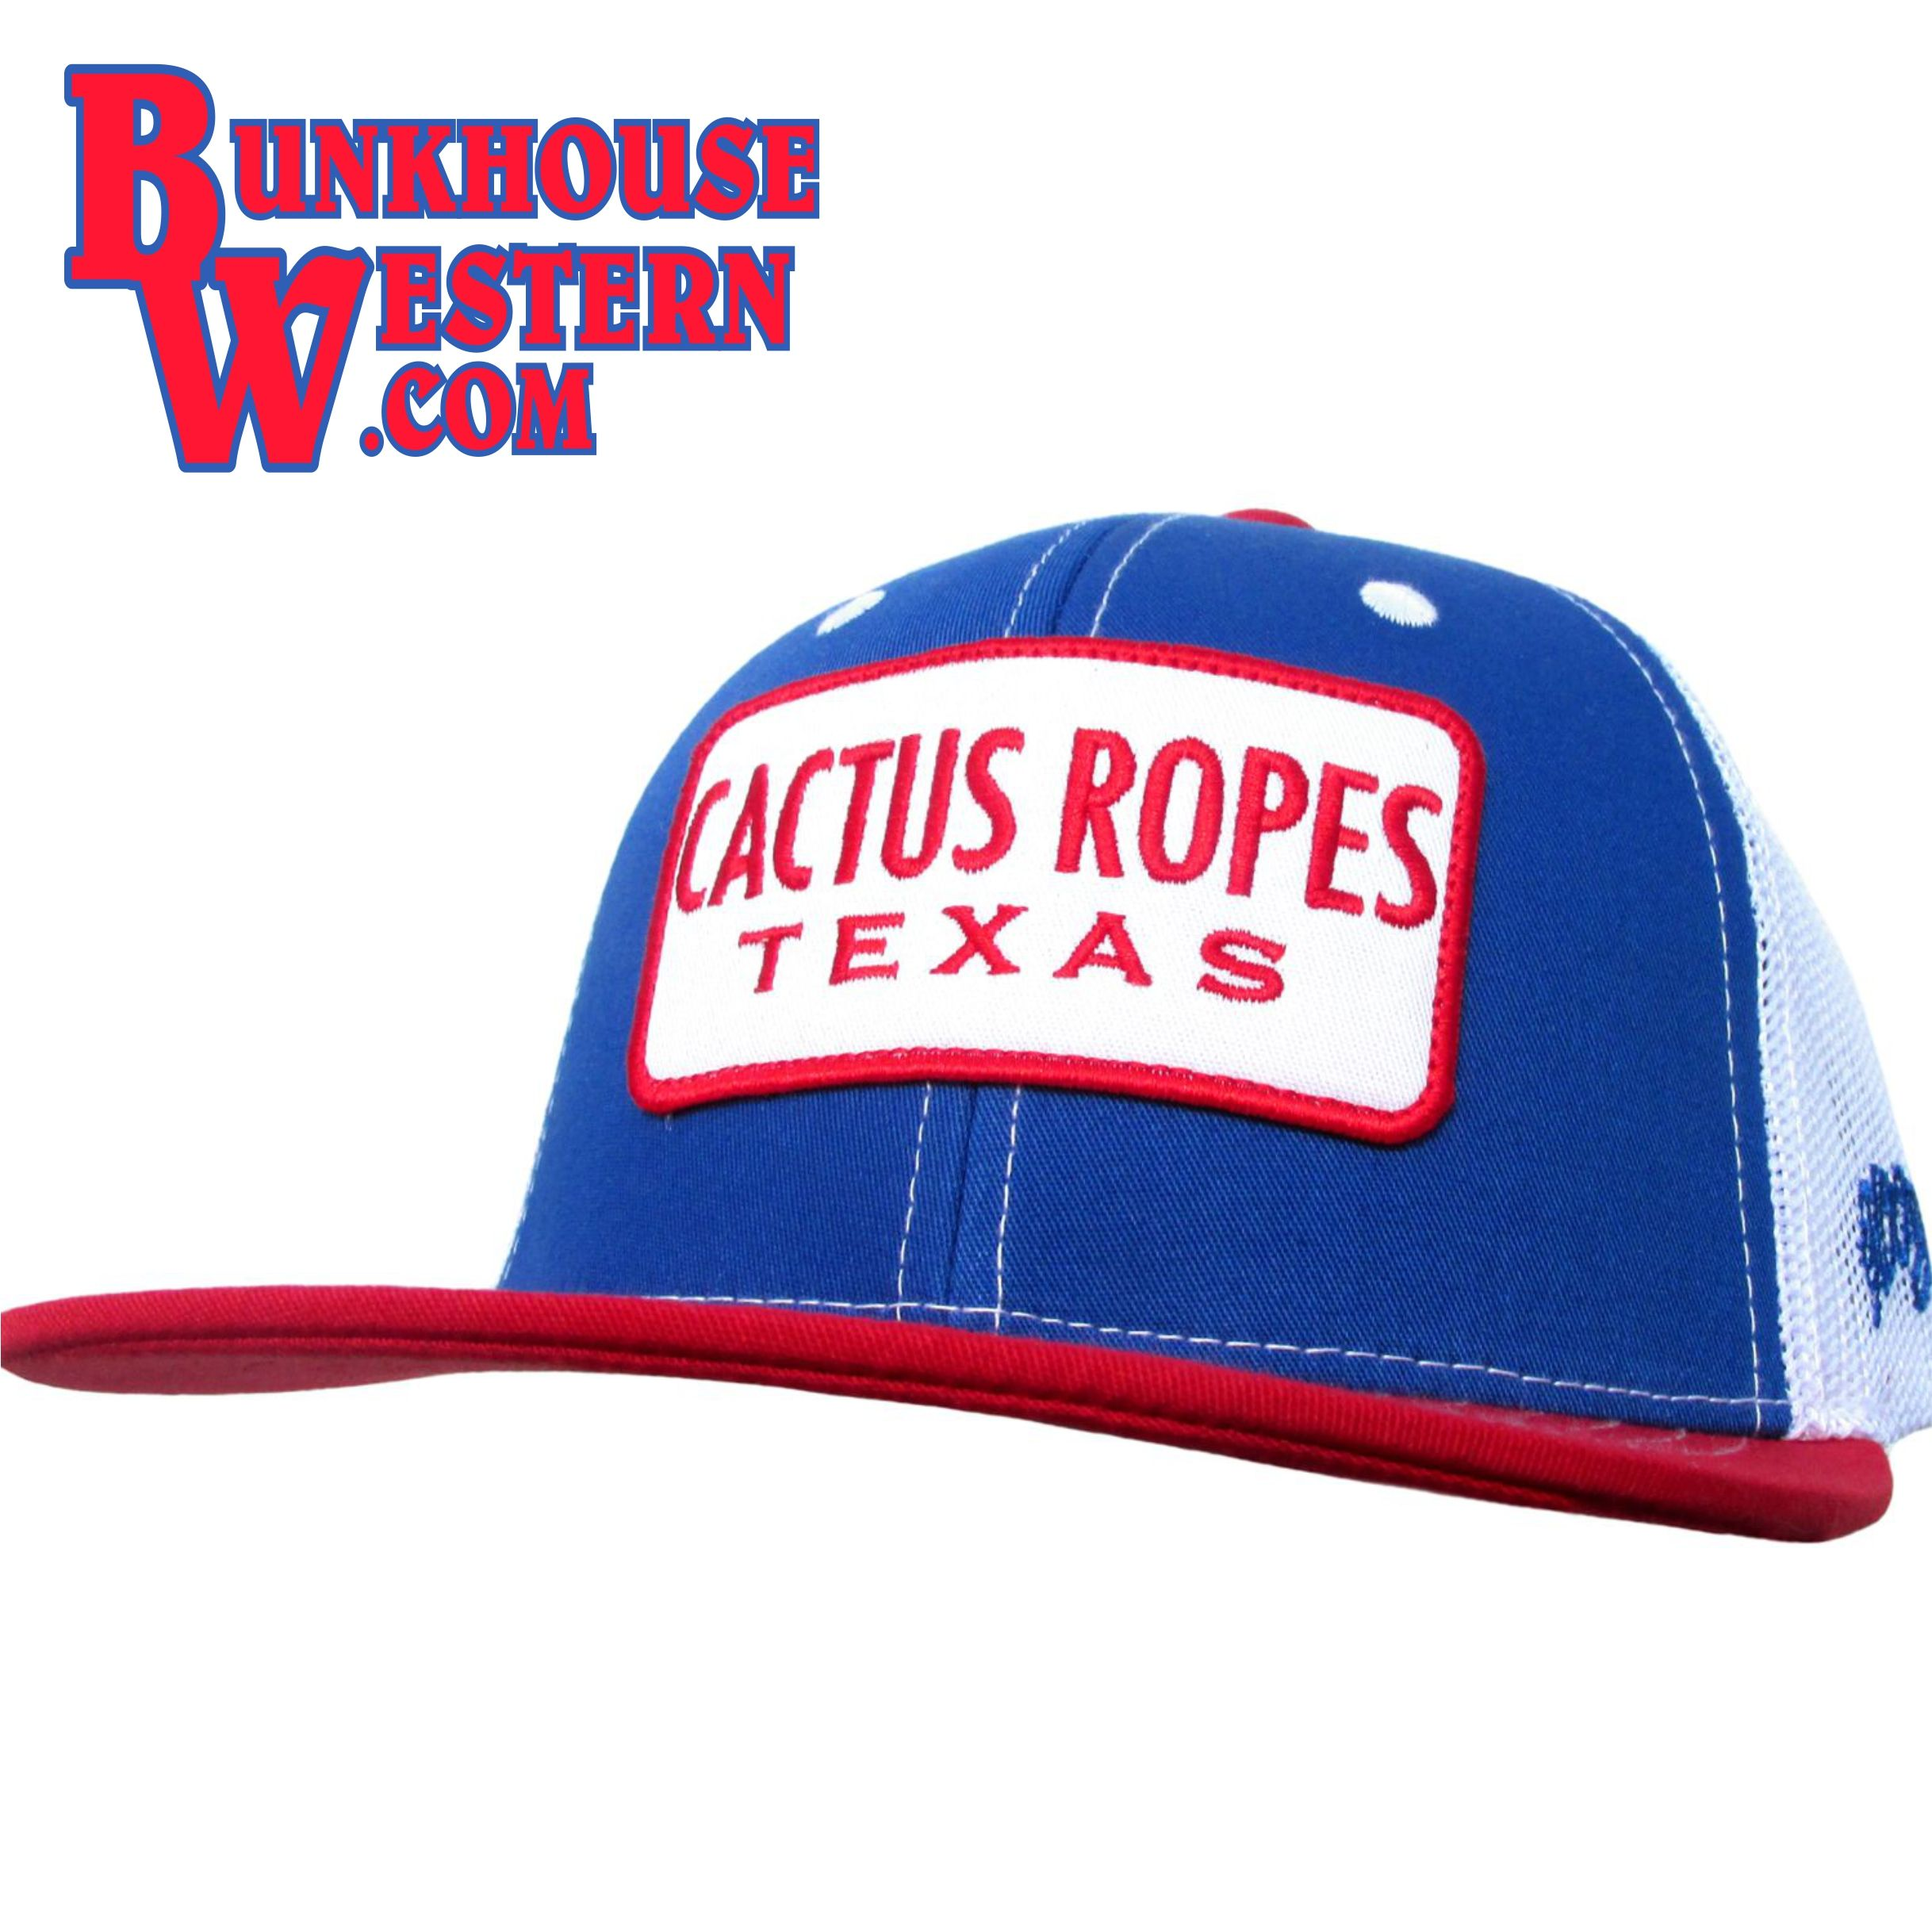 0e2fafcd3 YOUTH, Cactus Ropes, Hooey, Trucker Cap, Kids, Cowboy Hat, $27.98 ...